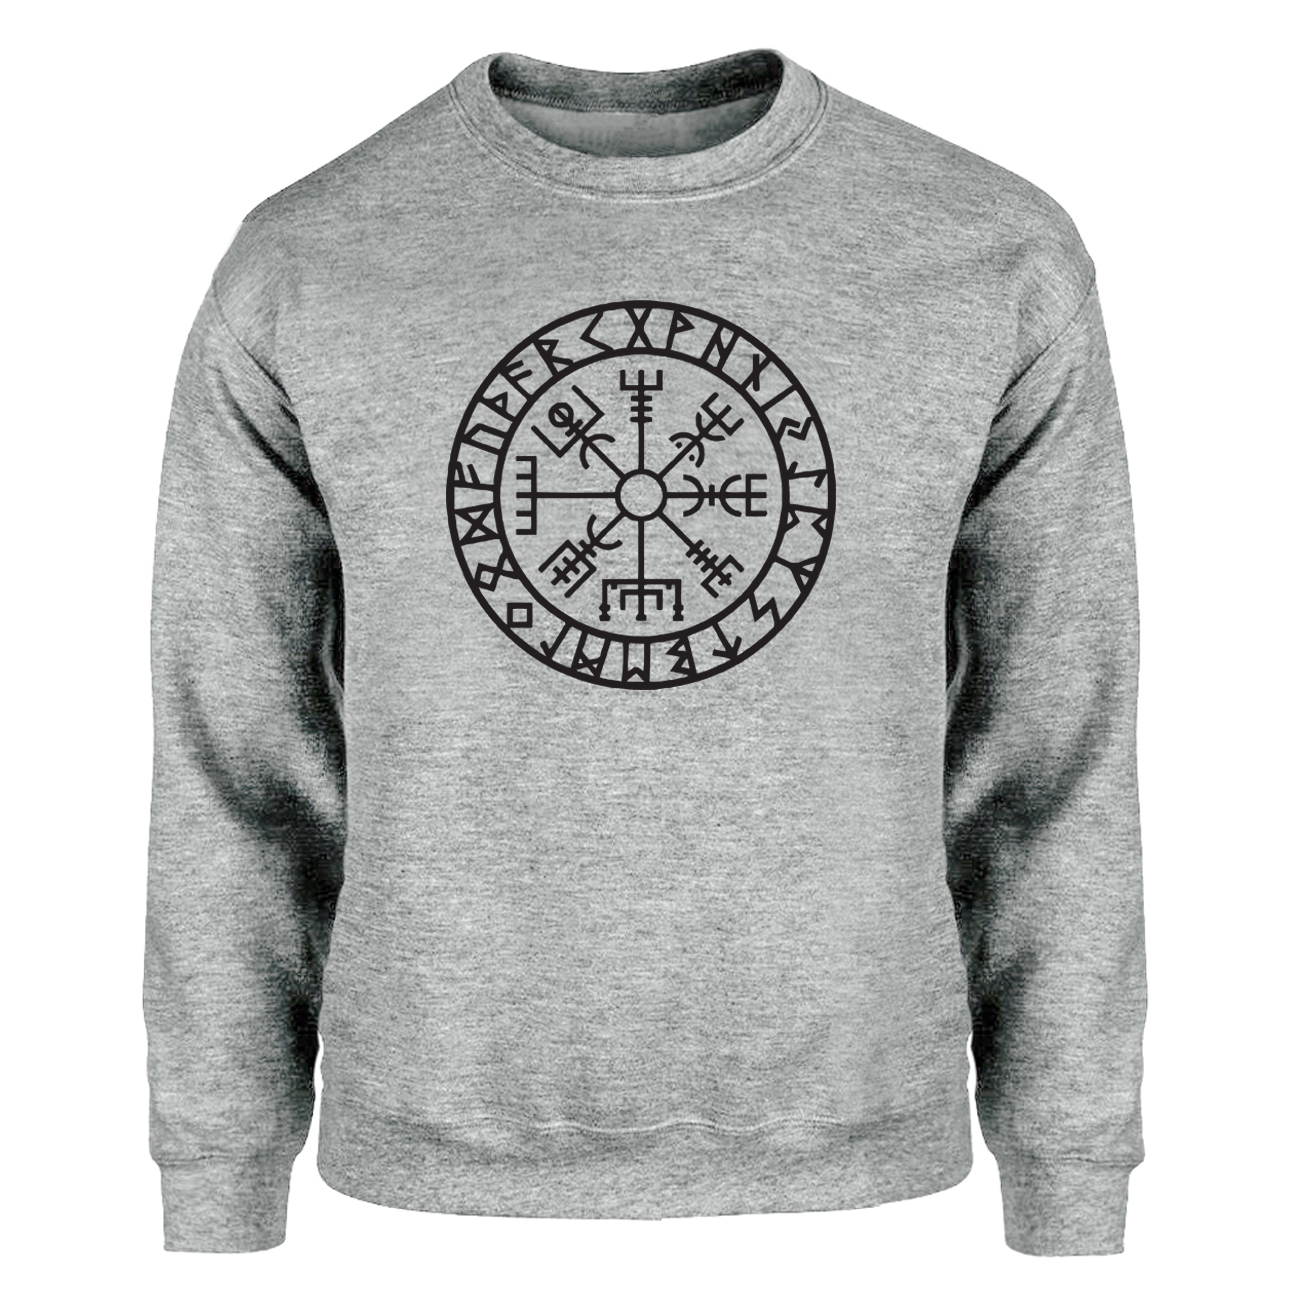 Odin Vikings Sweatshirts Men Valhalla Son Of Odin Crewneck Hoodies Sons Of Anarchy Winter Autumn Sportswear Gone To Streetwear